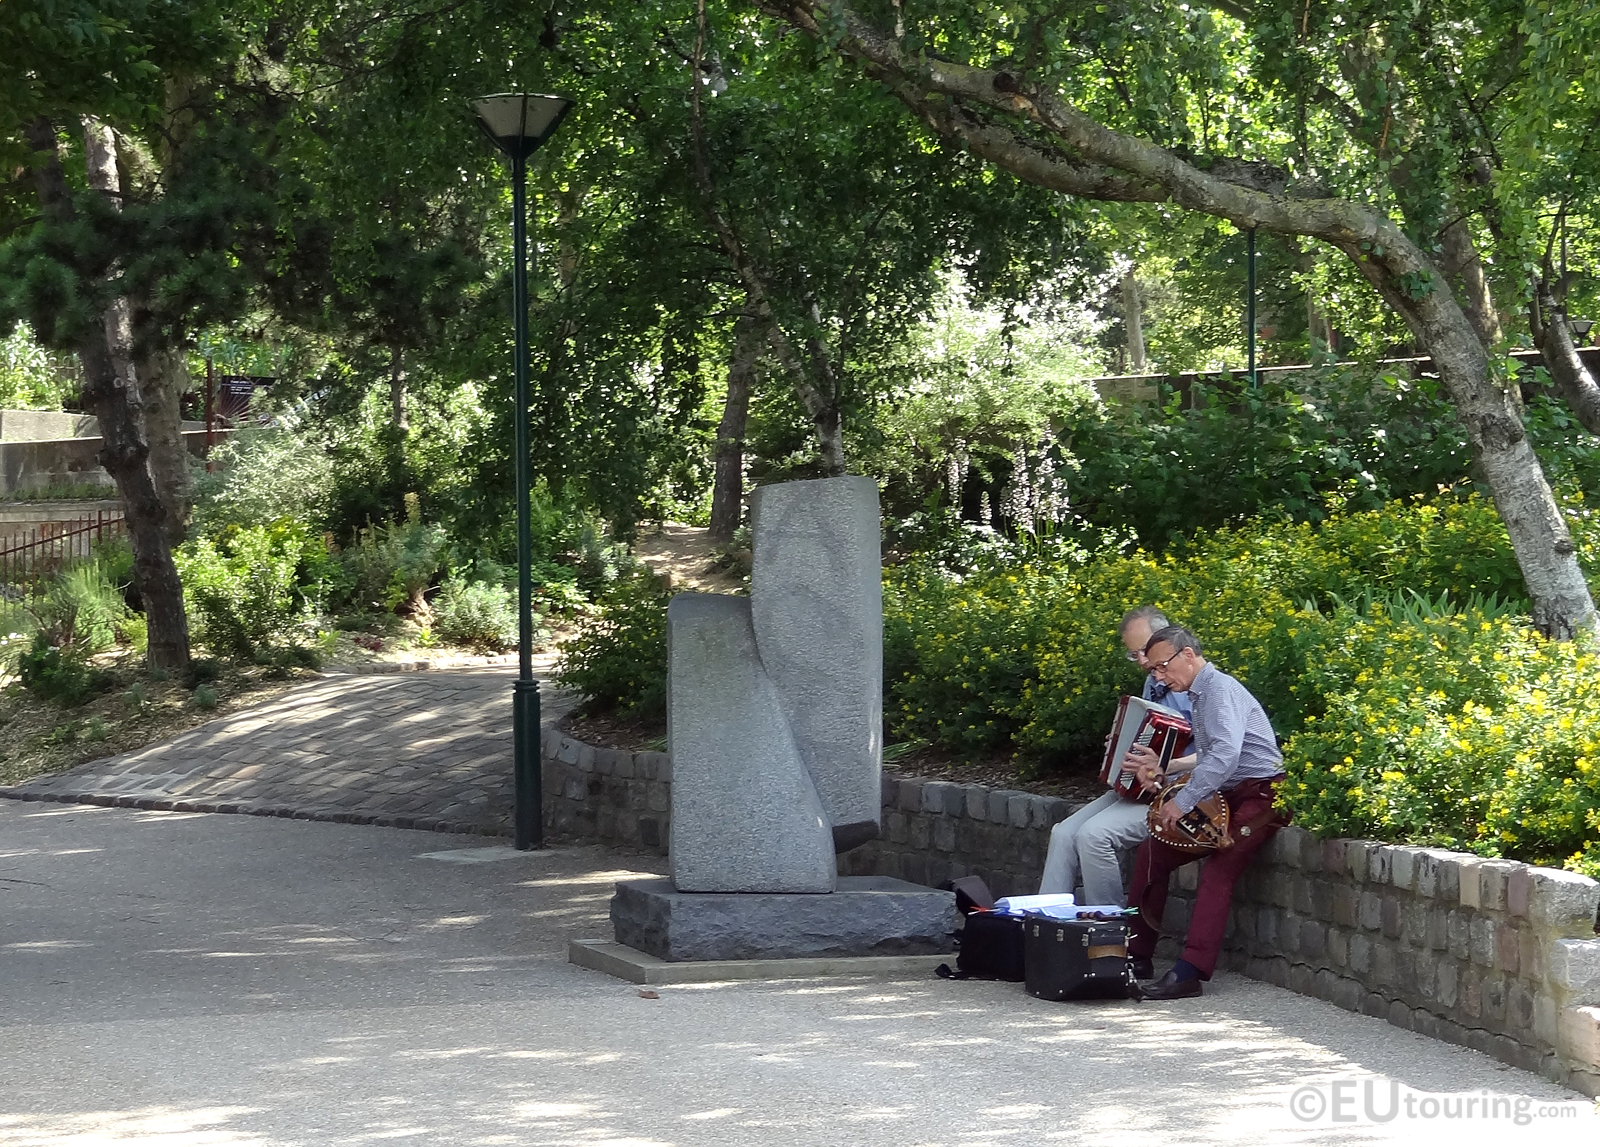 Music beside sculptures